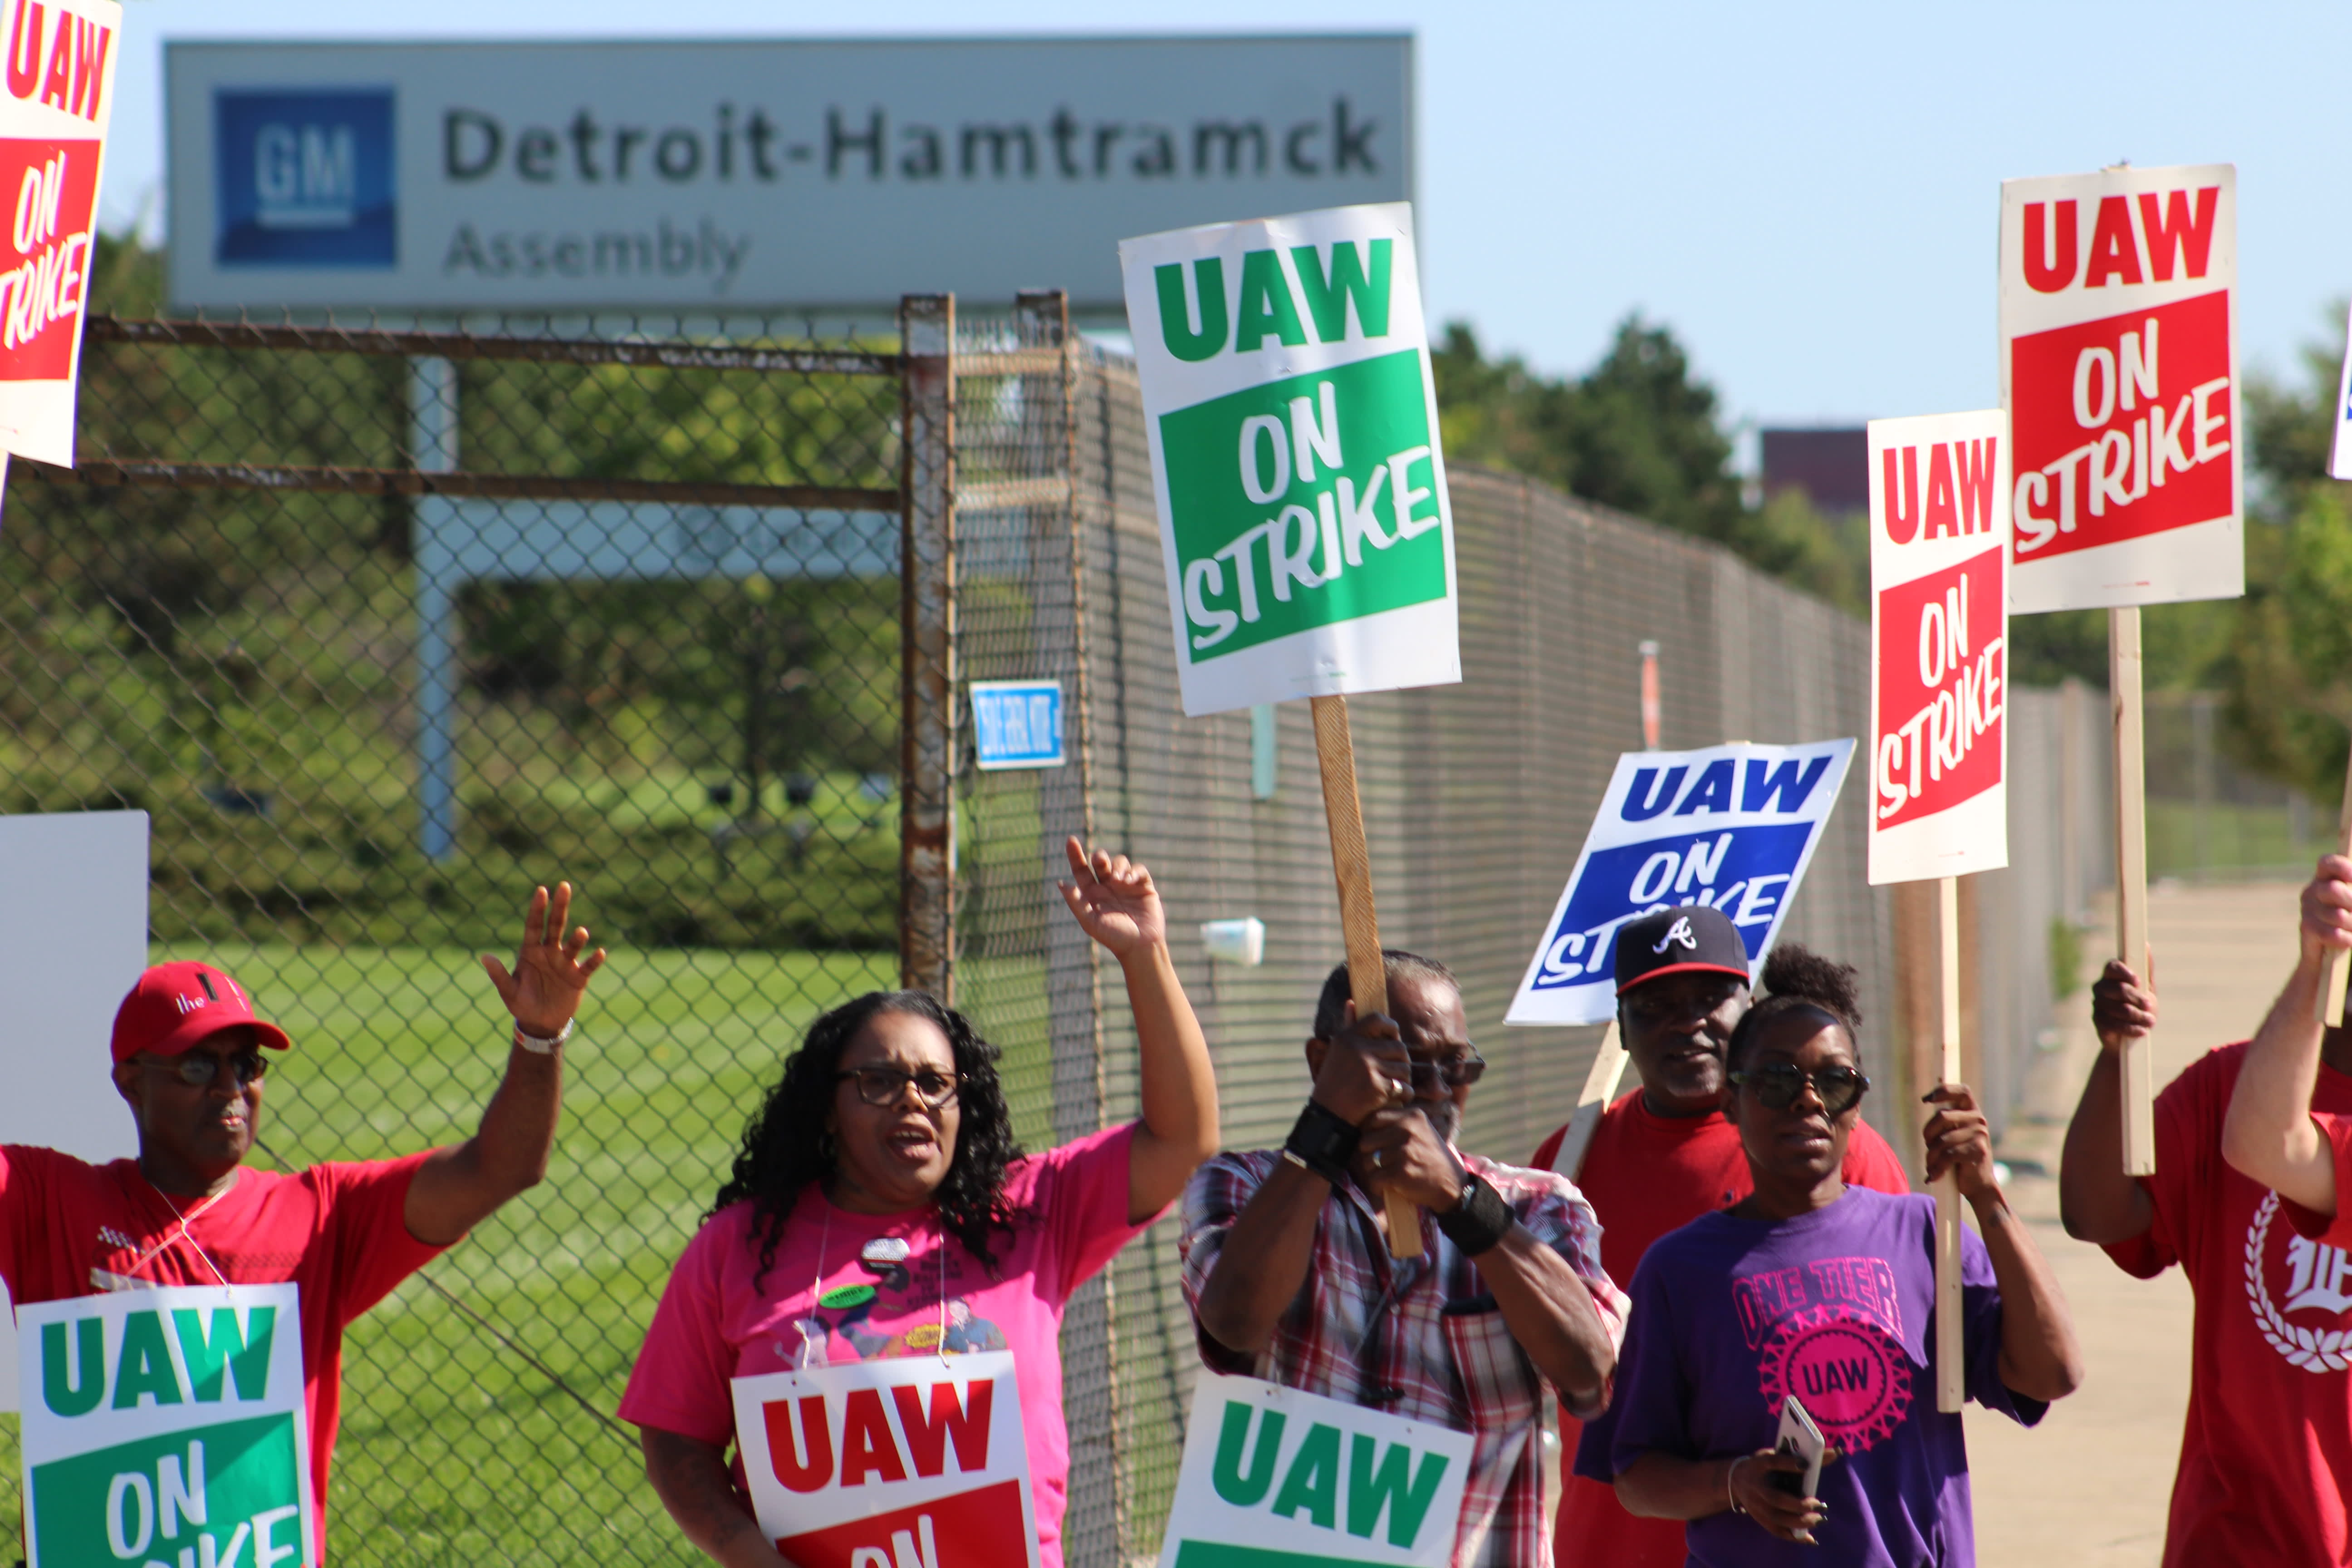 UAW leader: 'Some progress' has been made on contract talks as GM strike continues